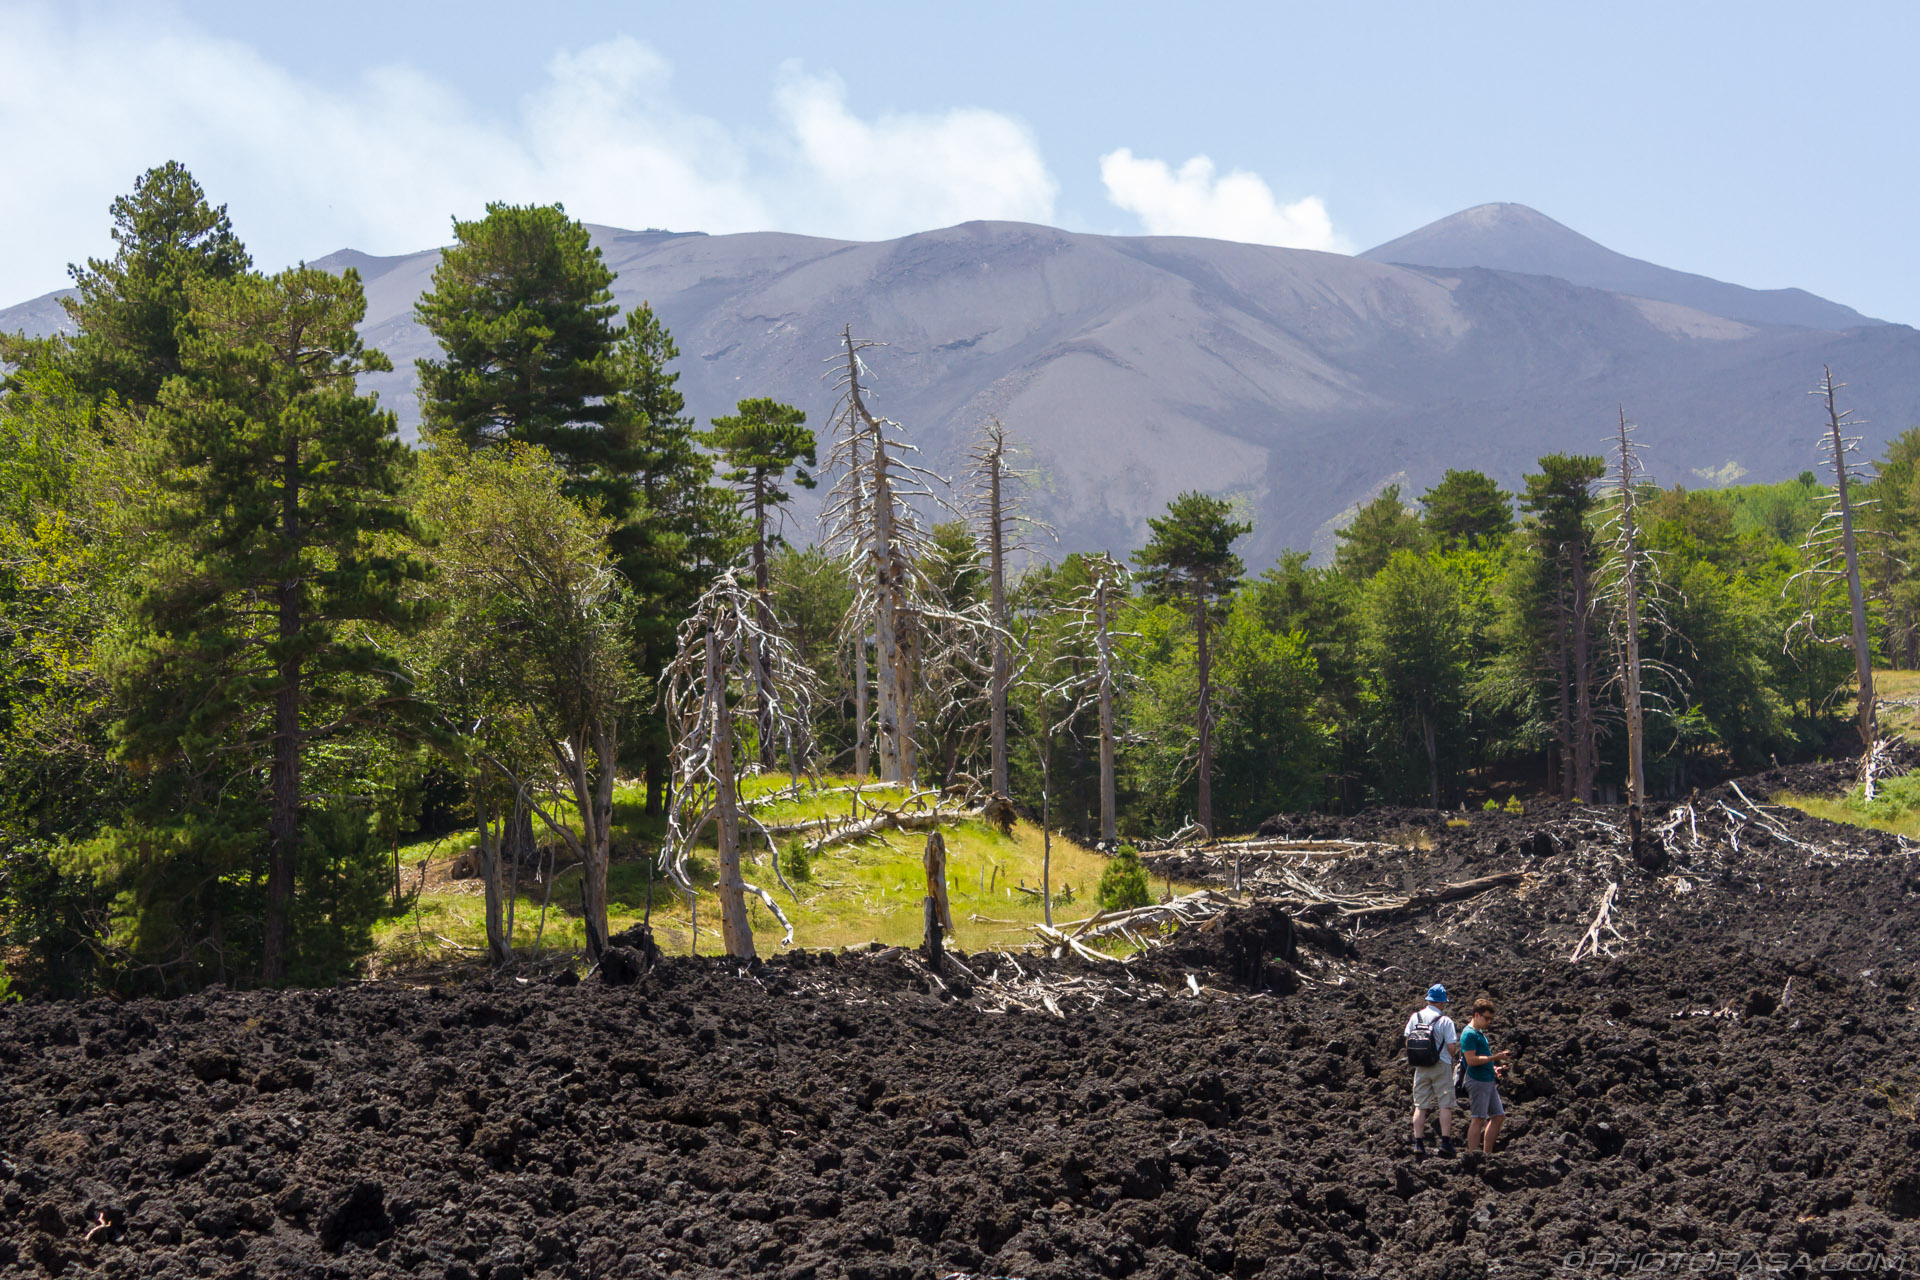 https://photorasa.com/mount-etna/lava-rock-and-petrified-trees/